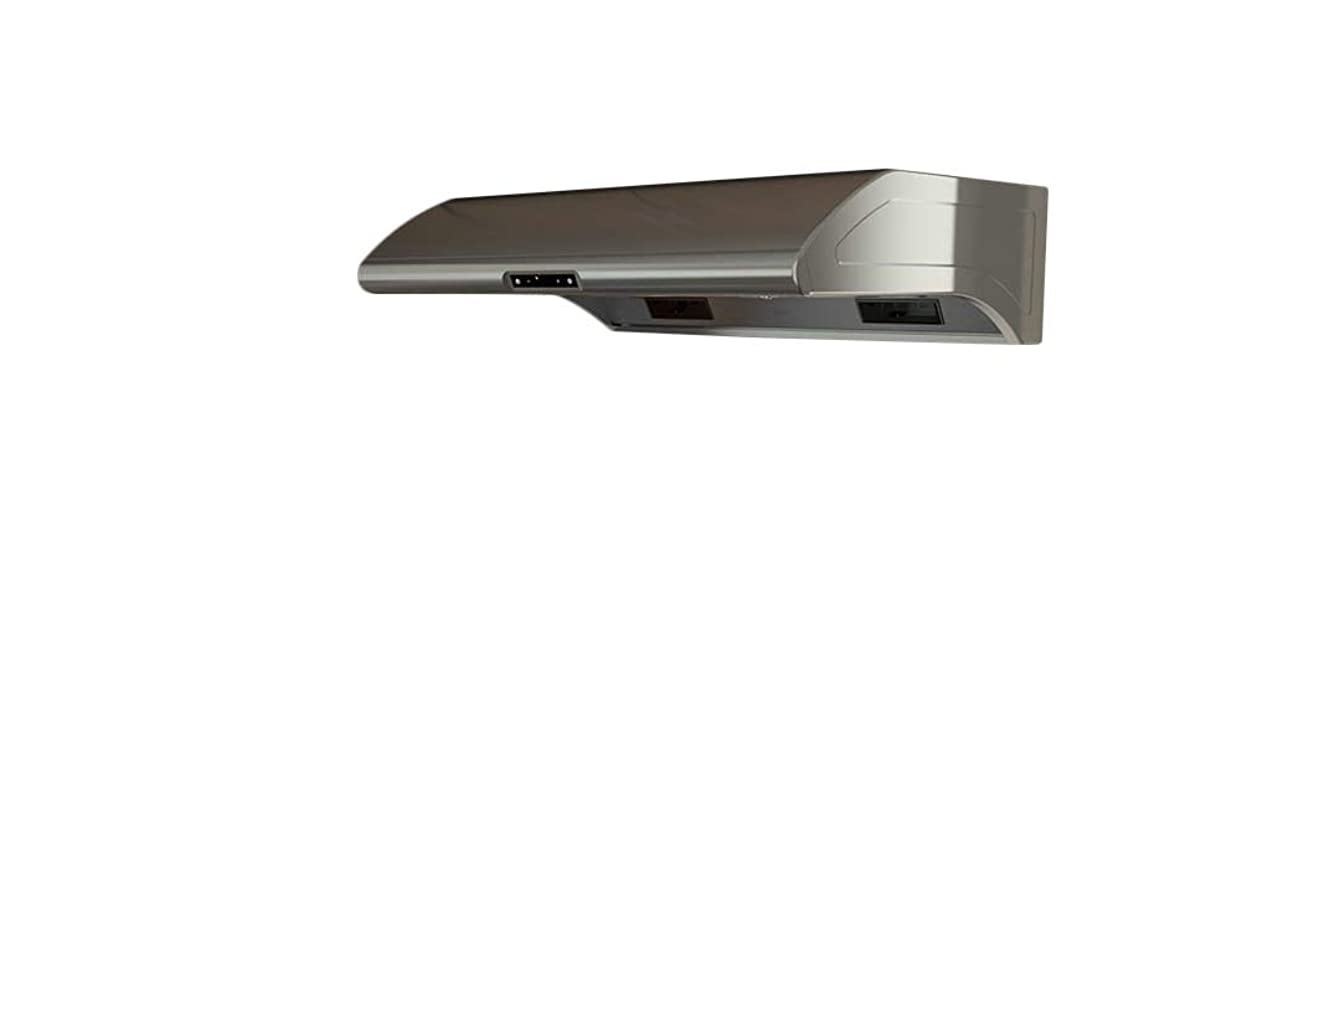 Zephyr AK2148B 850 CFM 48 Inch Wide Under Cabinet Range Hood from the Typhoon Se, Stainless Steel